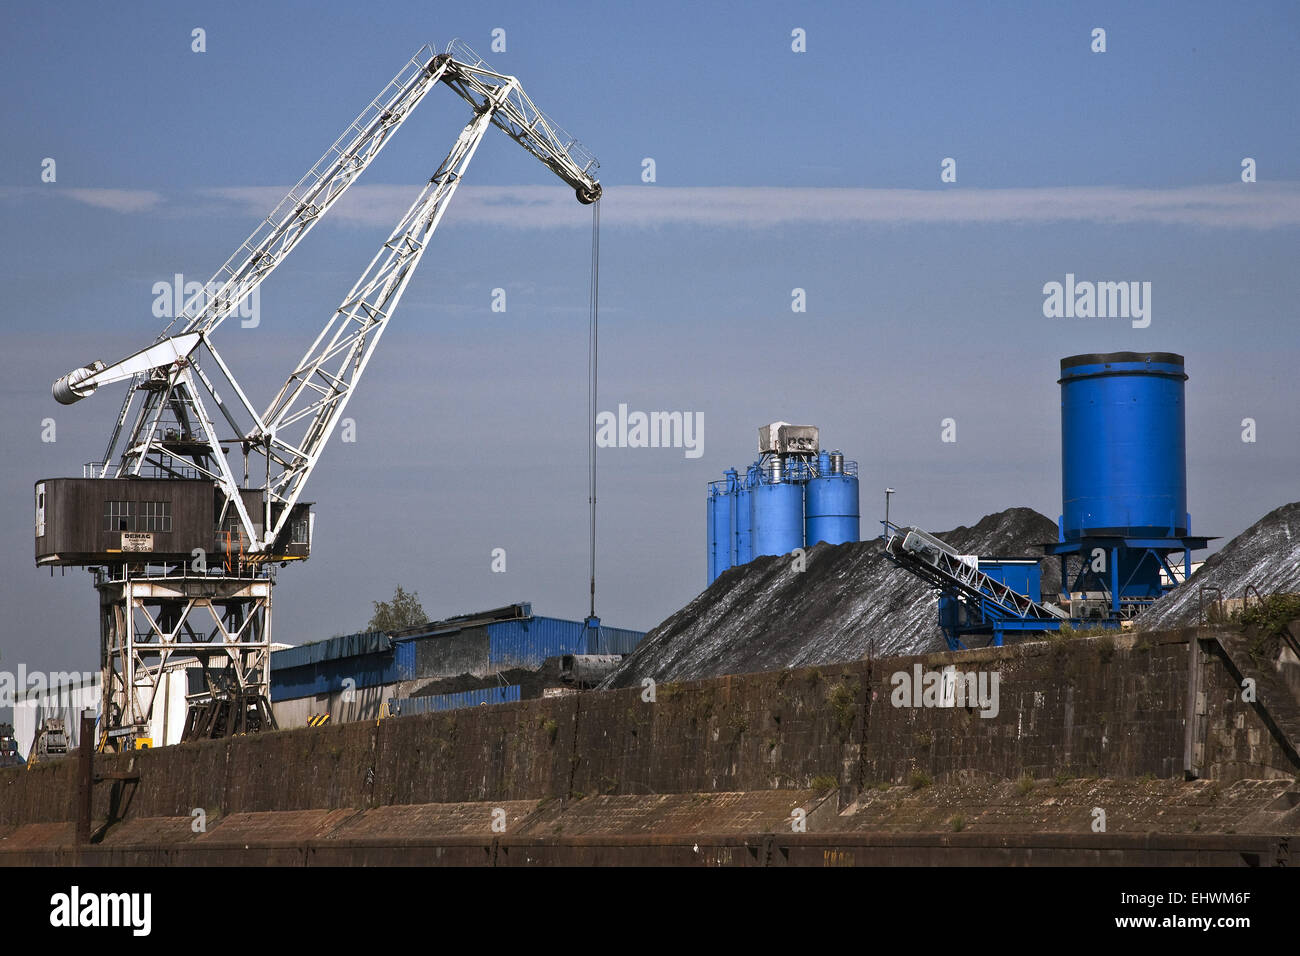 Inland port in Duisburg, Germany. - Stock Image